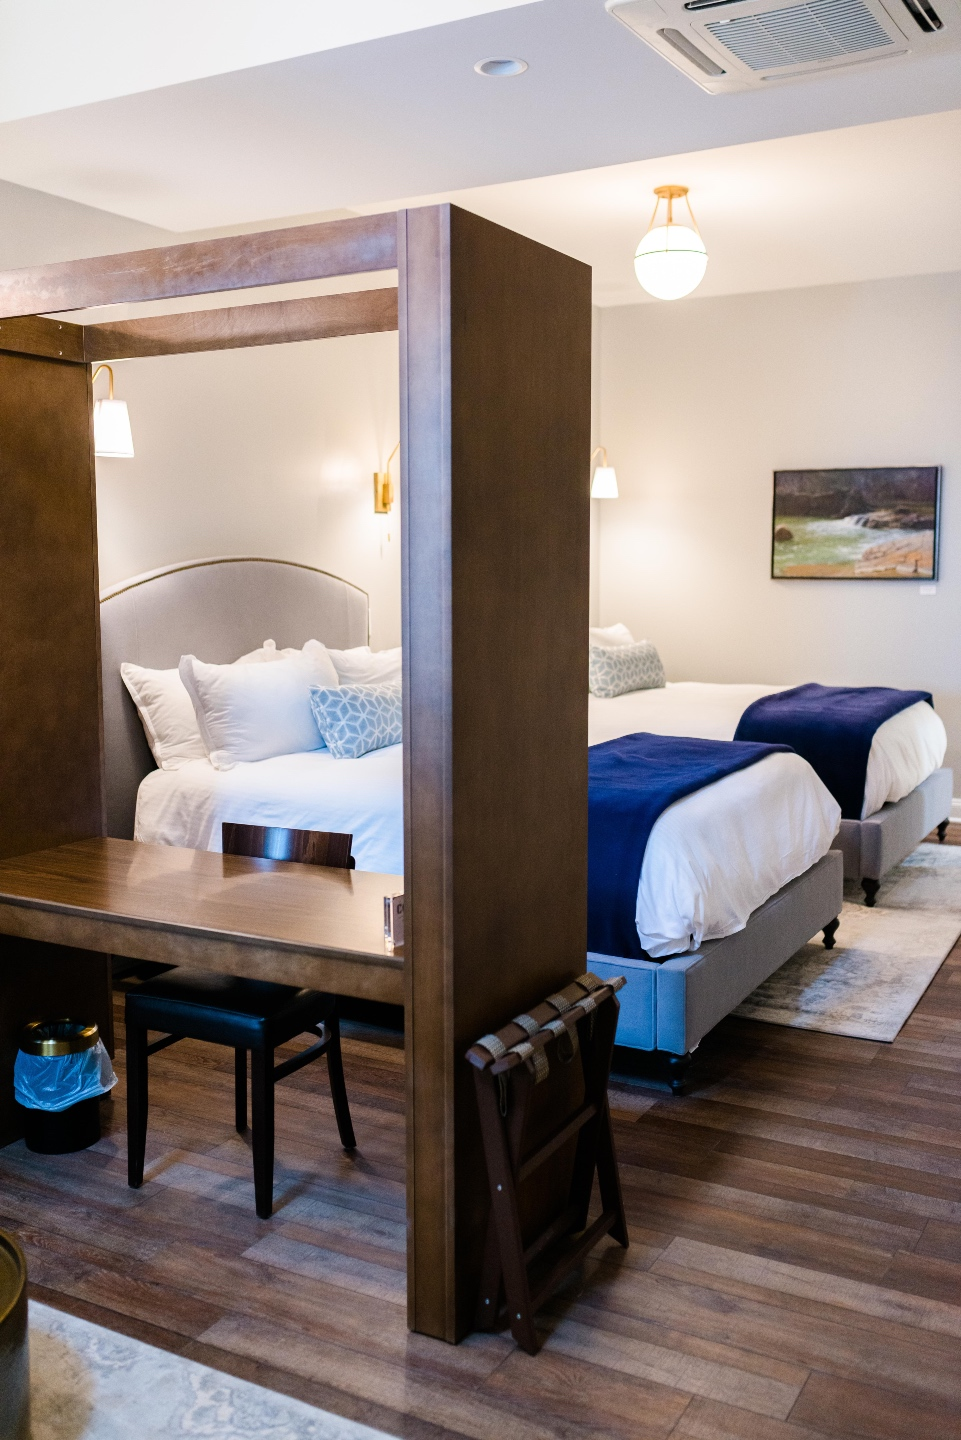 Places to Stay: The Colonial Inn in Hillsborough NC |The Colonial Inn Hillsborough NC by popular NC travel blog, I'm Fixin' To: image of two twin size beds with grey fabric covered head boards, white bedding, blue and white lumbar pillows and blue throw blankets.